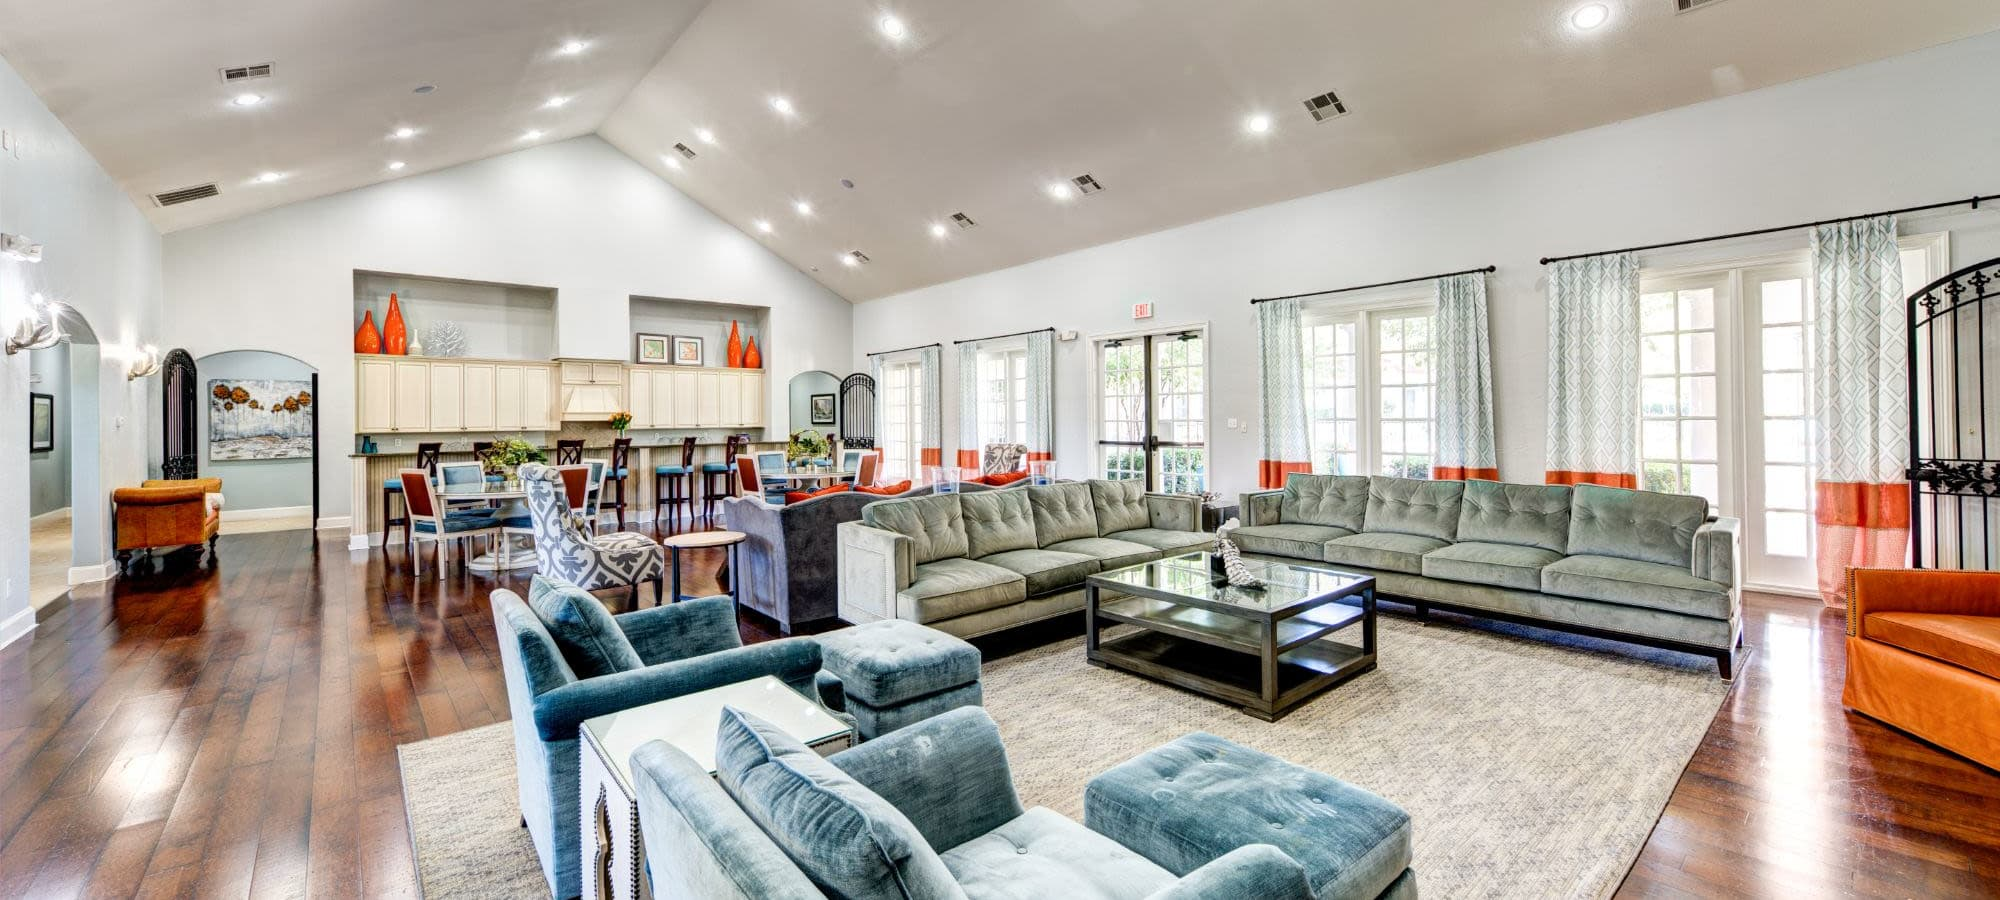 Gallery of photos for Marquis at Silver Oaks in Grapevine, Texas